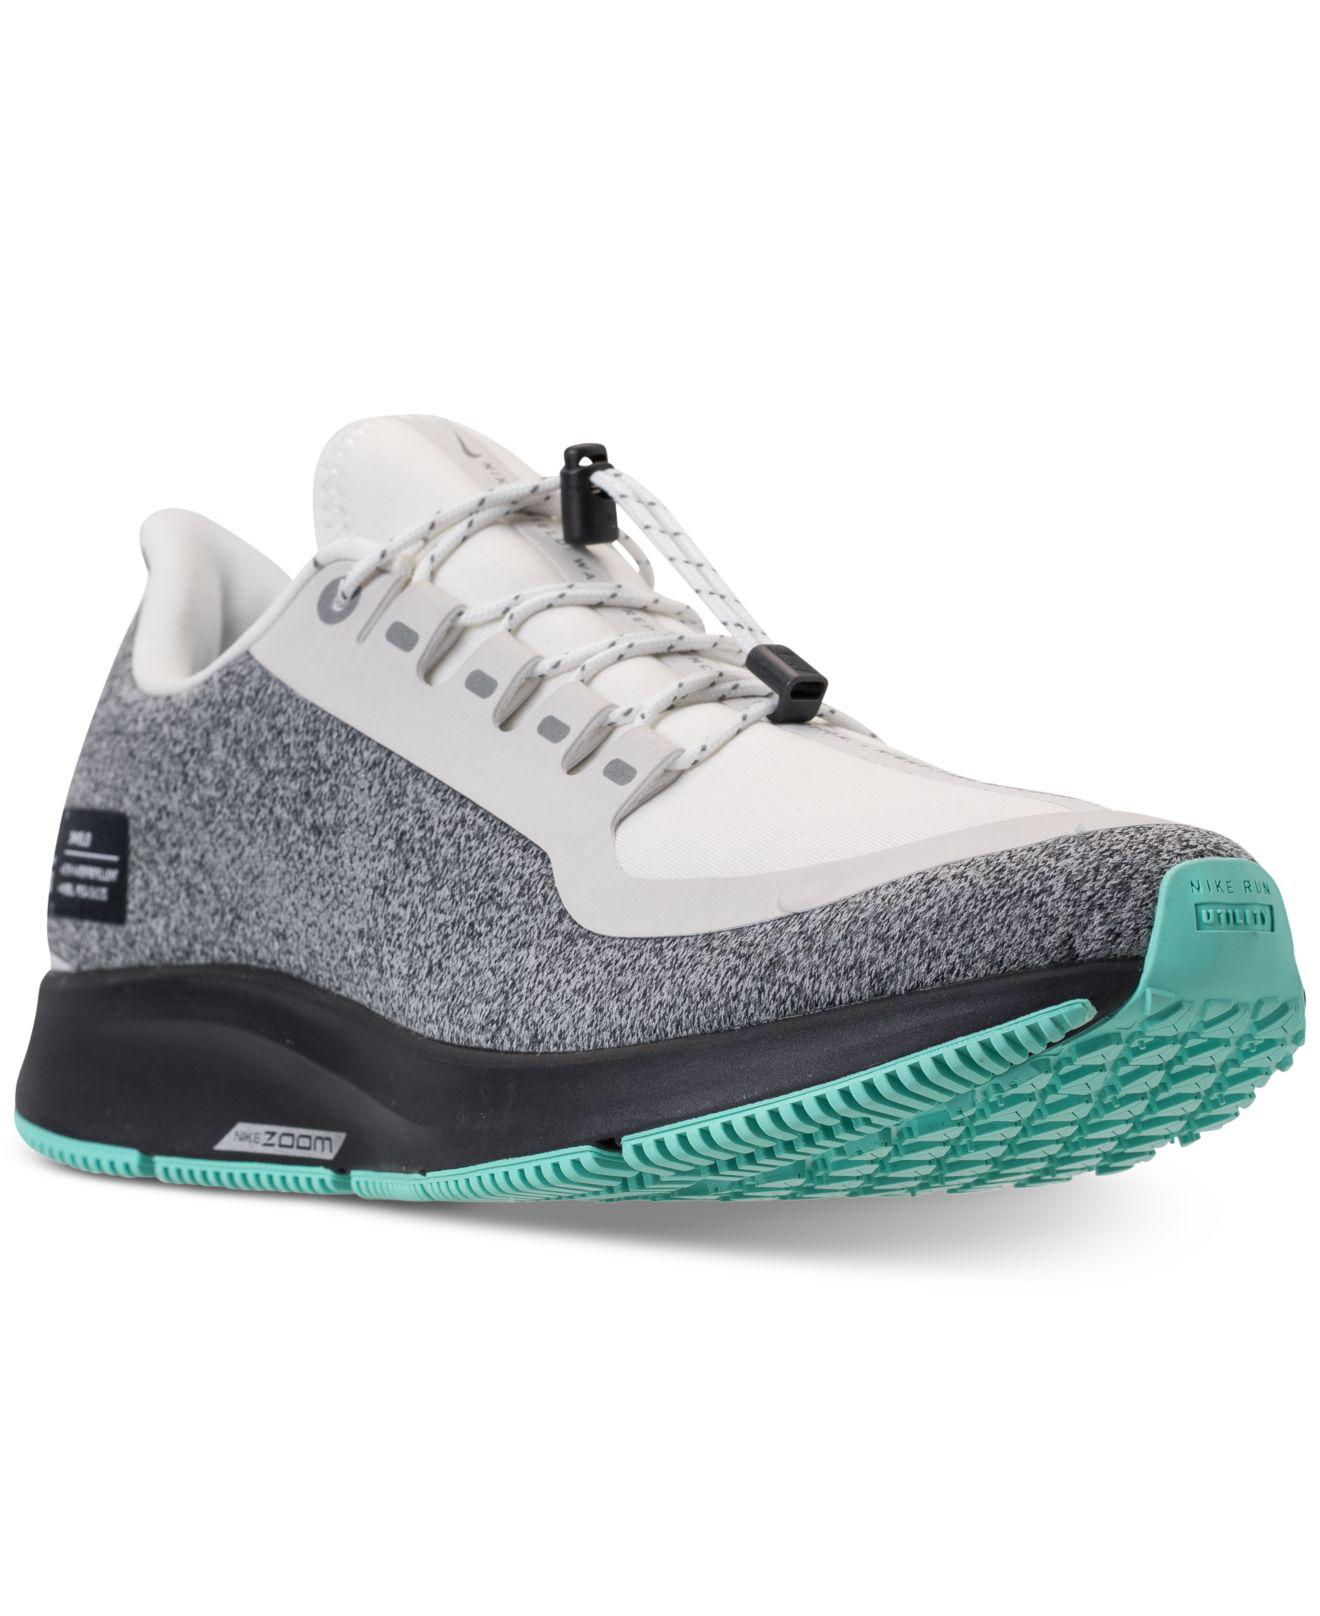 b8bbbeed3c83 Lyst - Nike Air Zoom Pegasus 35 Shield Running Sneakers From Finish Line